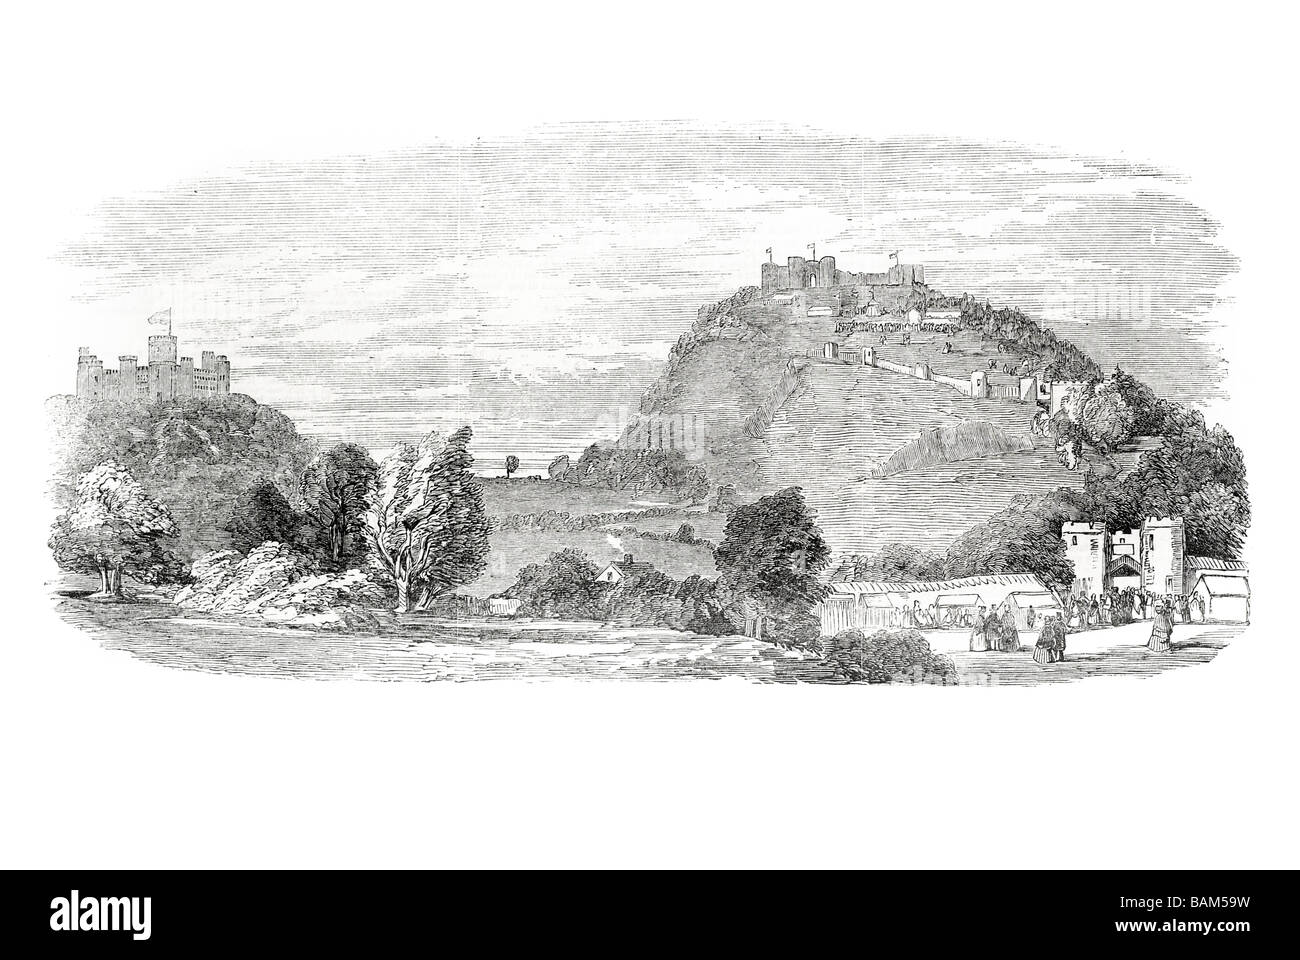 beeston castle festivities Cheshire England stronghold tower fortified defensive 1851 - Stock Image